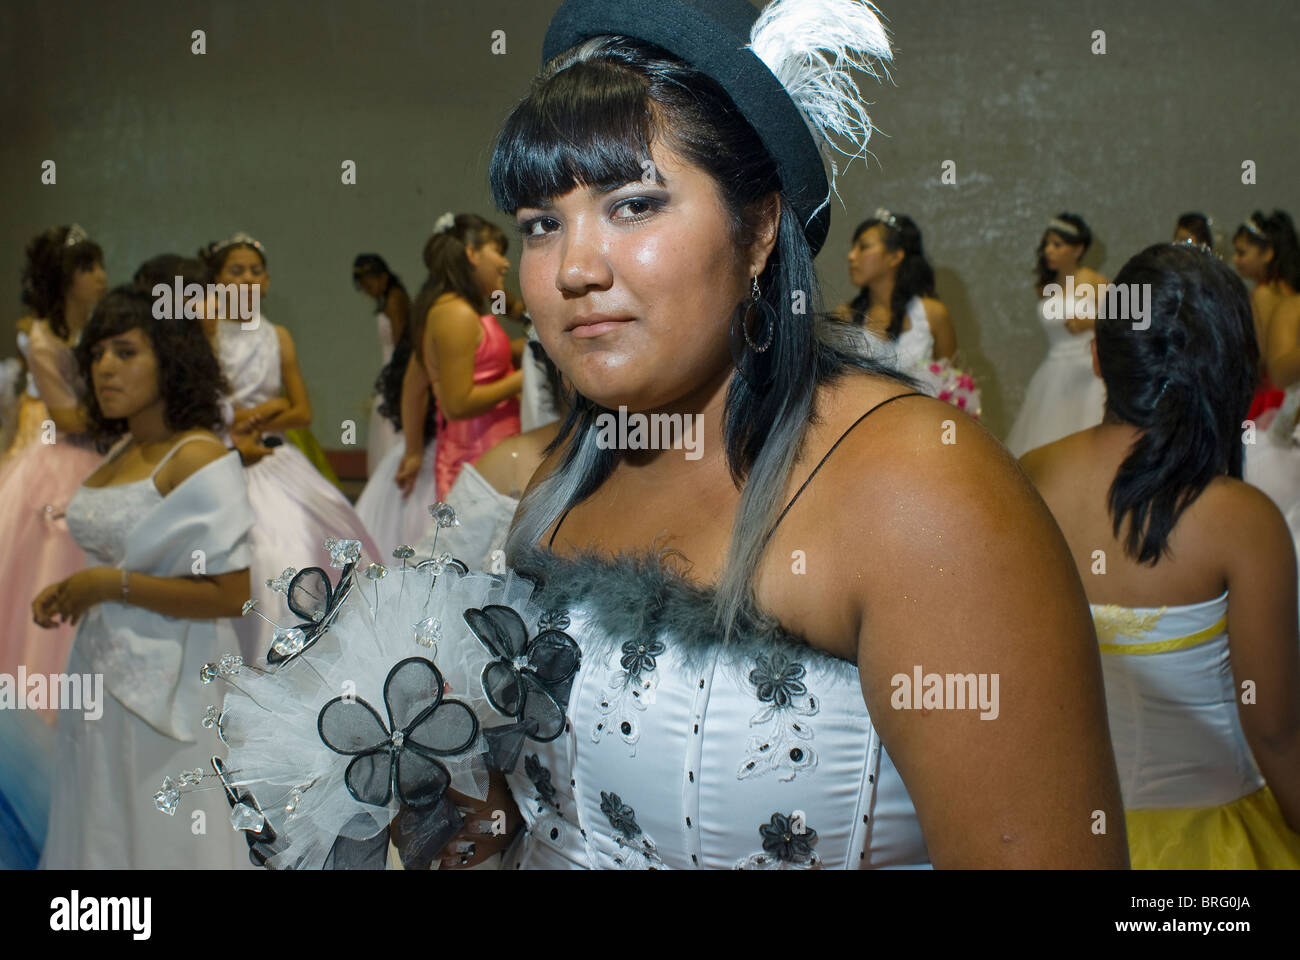 A quiceañera is a rite-of-passage ritual for many 15 year-old girls like this one in Latin American countries. Stock Photo